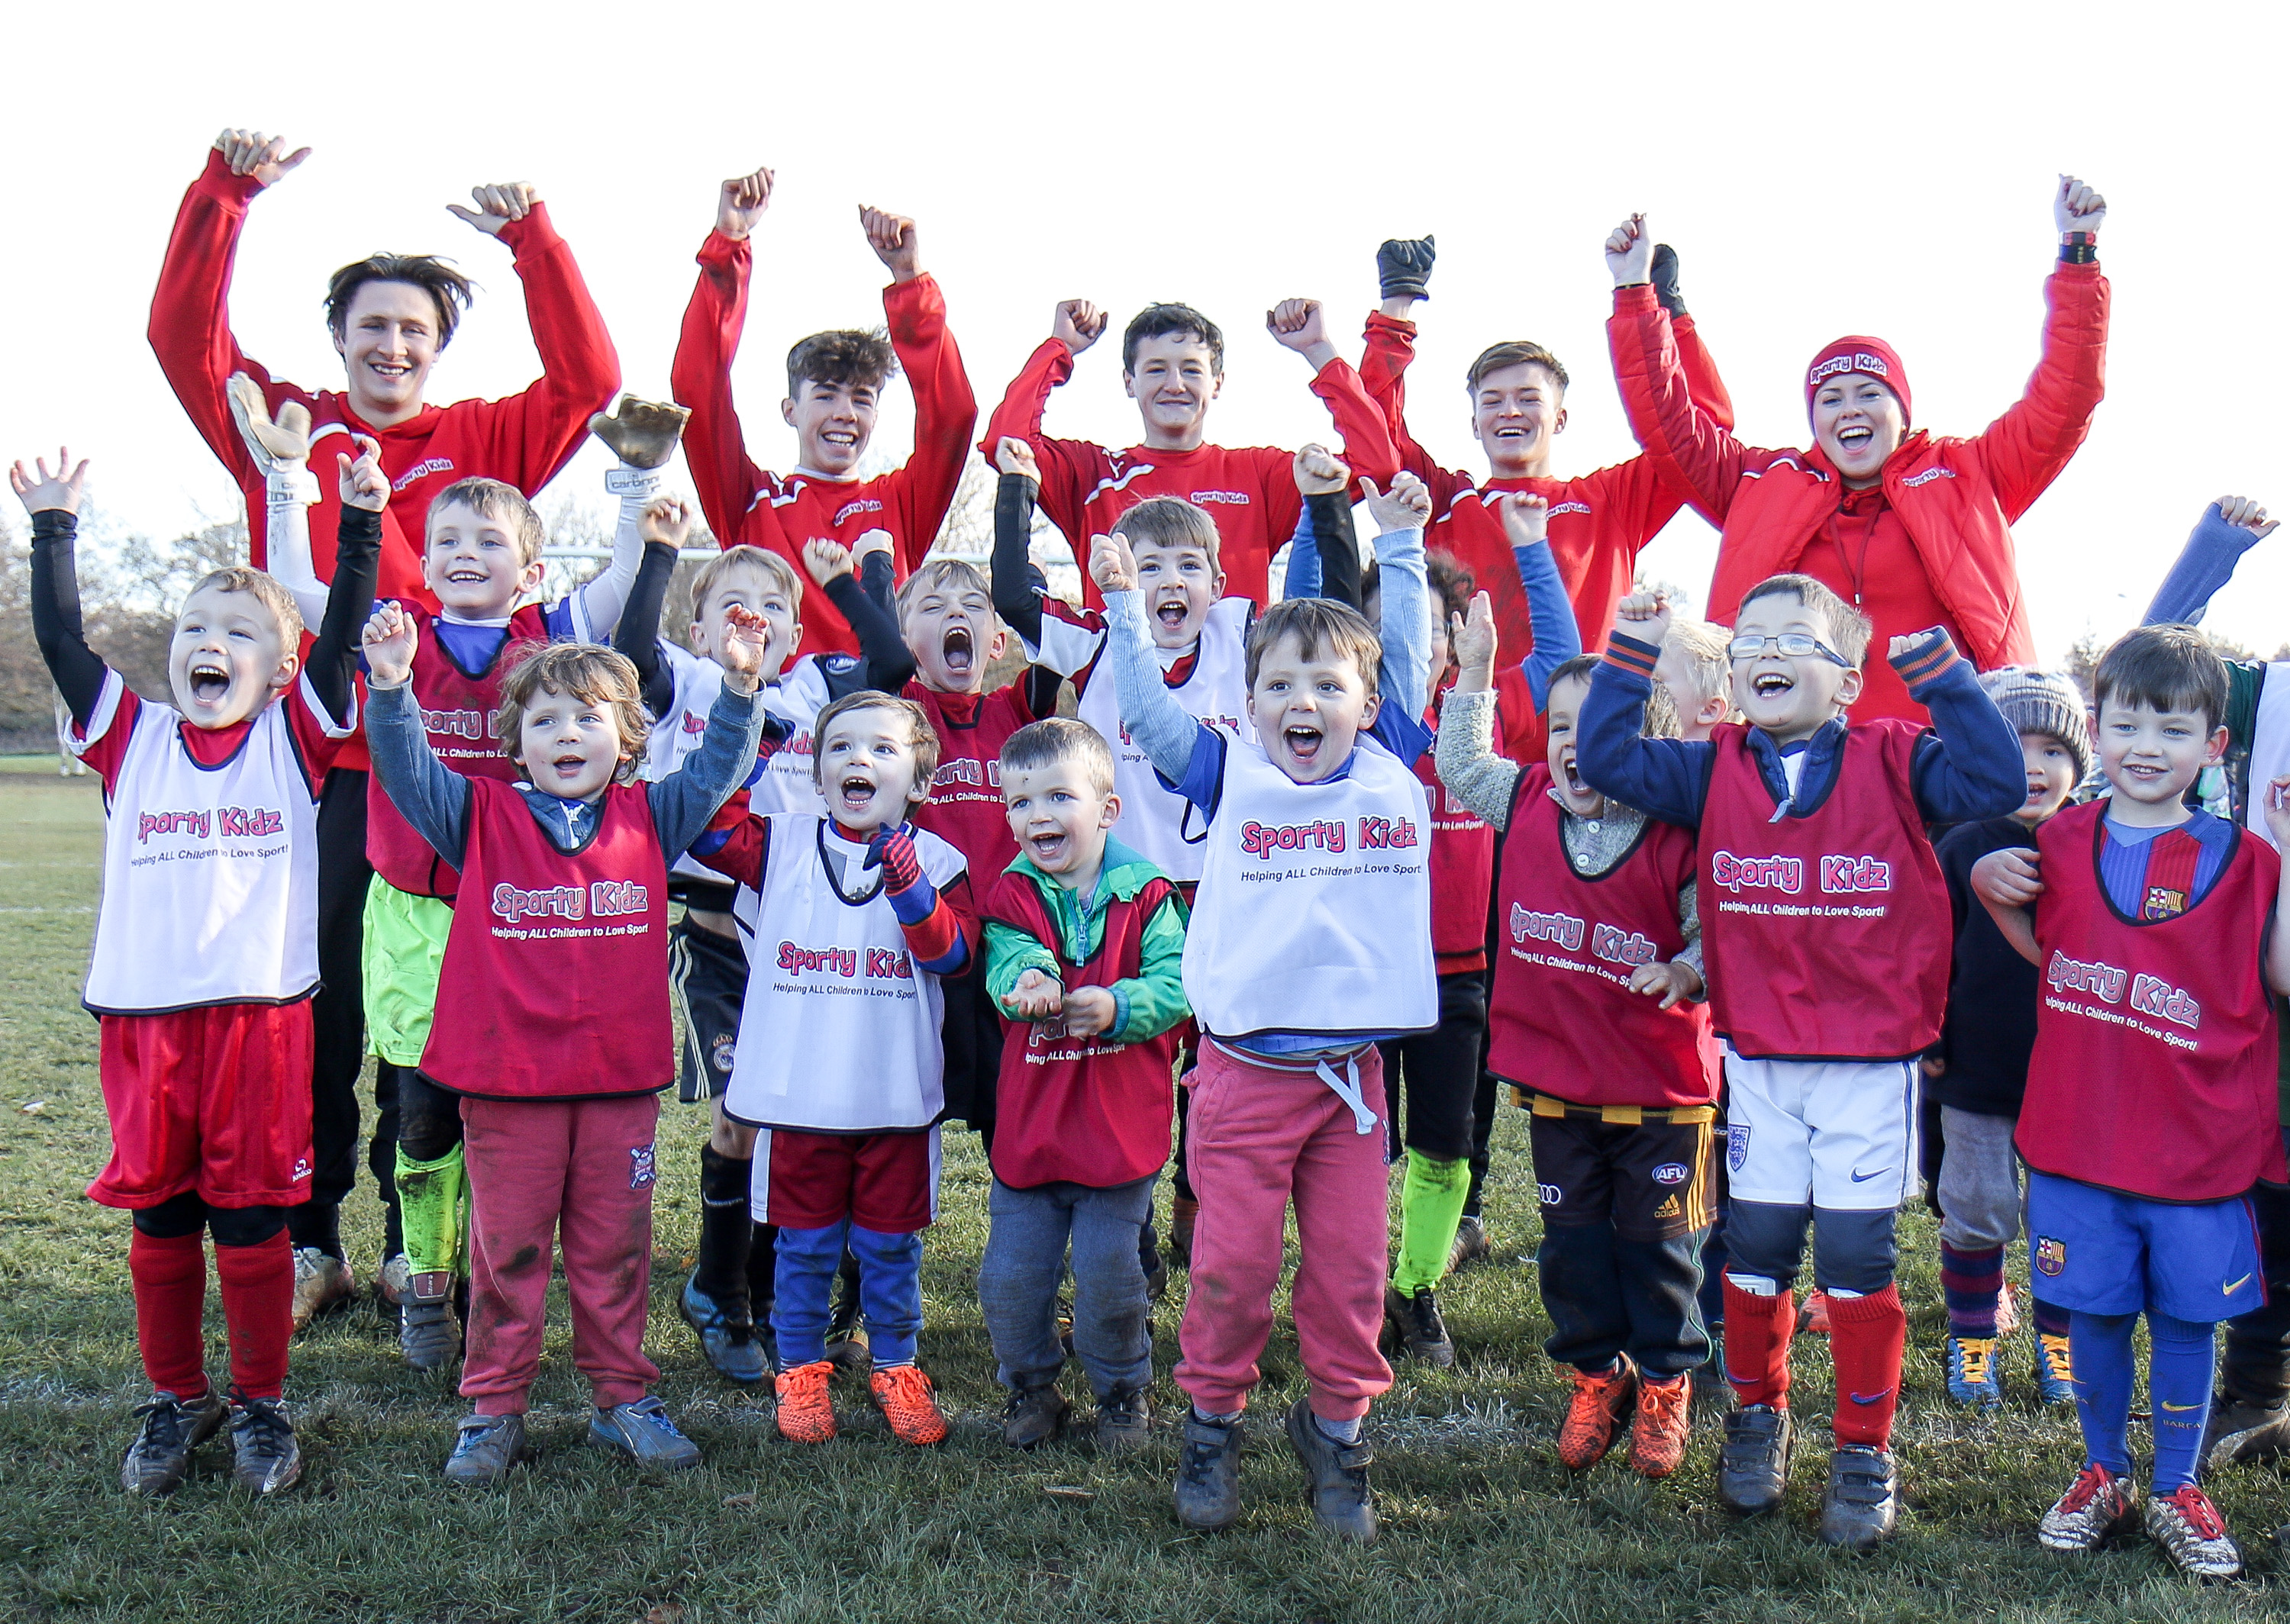 NEW UNDER 6 FOOTBALLERS WANTED FOR 2017/2018 SEASON